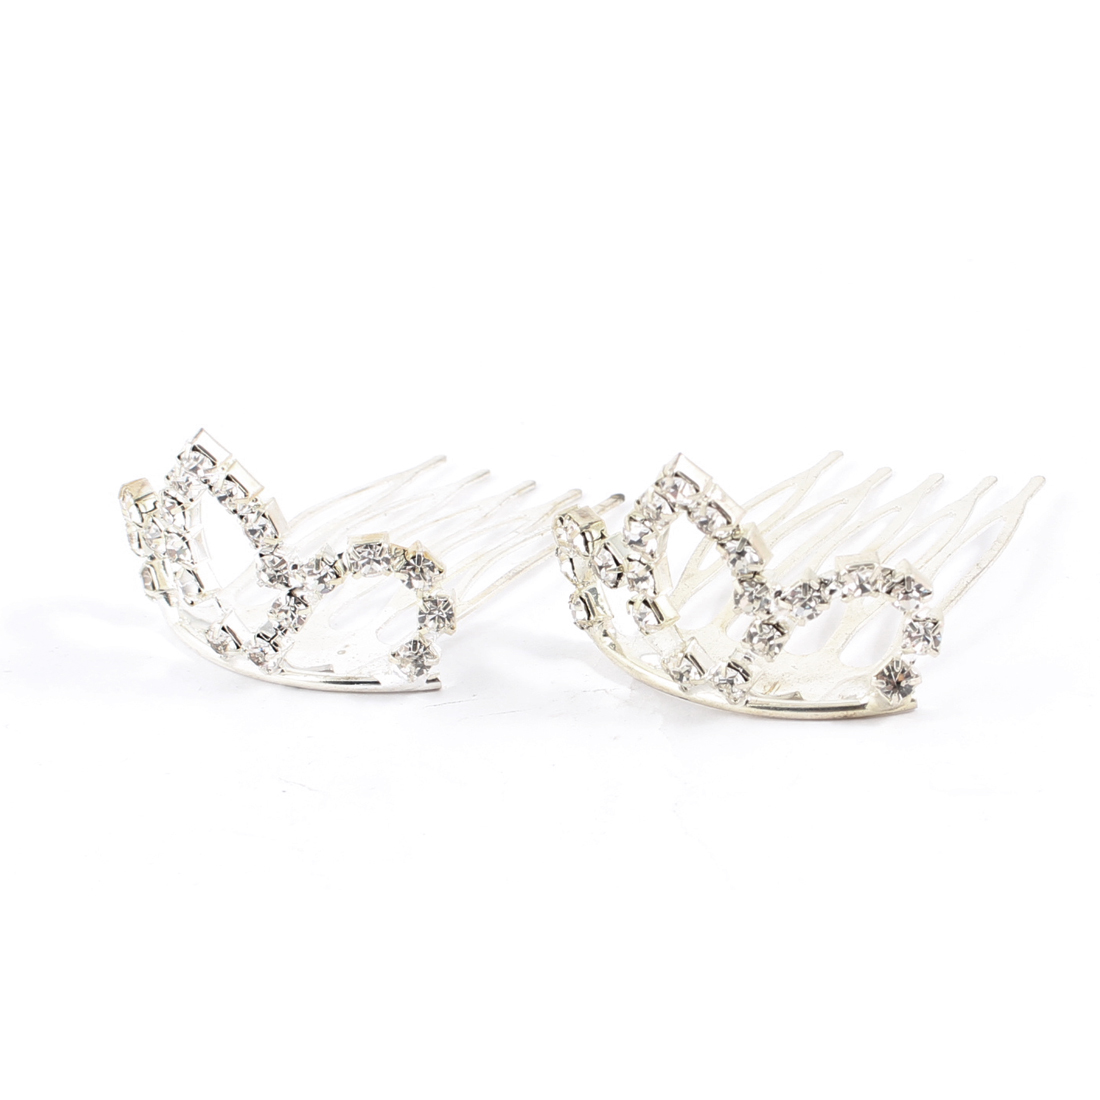 2 Pcs Rhinestone Detail Silver Tone Hair Crown Hair Pin for Ladies